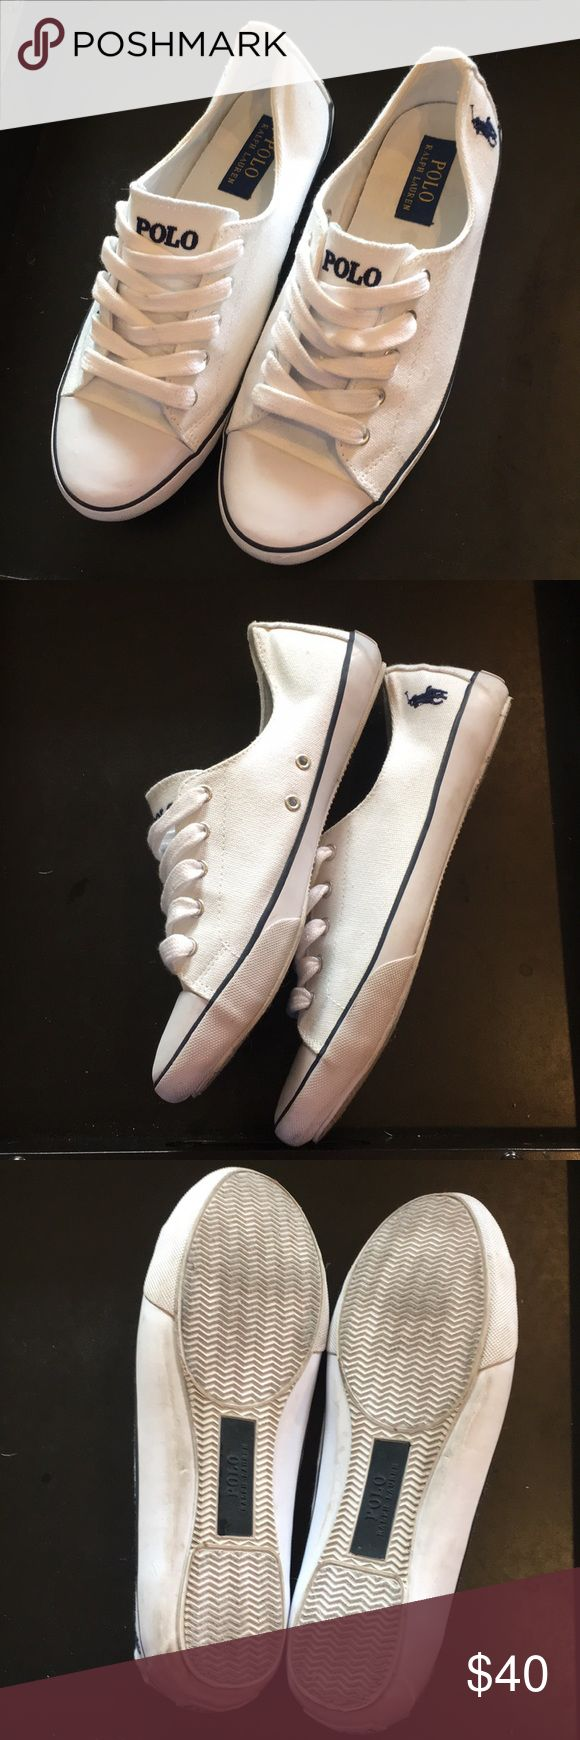 Polo Ralph Lauren Tennis Shoes Sz 8.5 Classic preppy white tennies can make any casual outfit look classic and clean. Only worn a few times! Polo by Ralph Lauren Shoes Sneakers